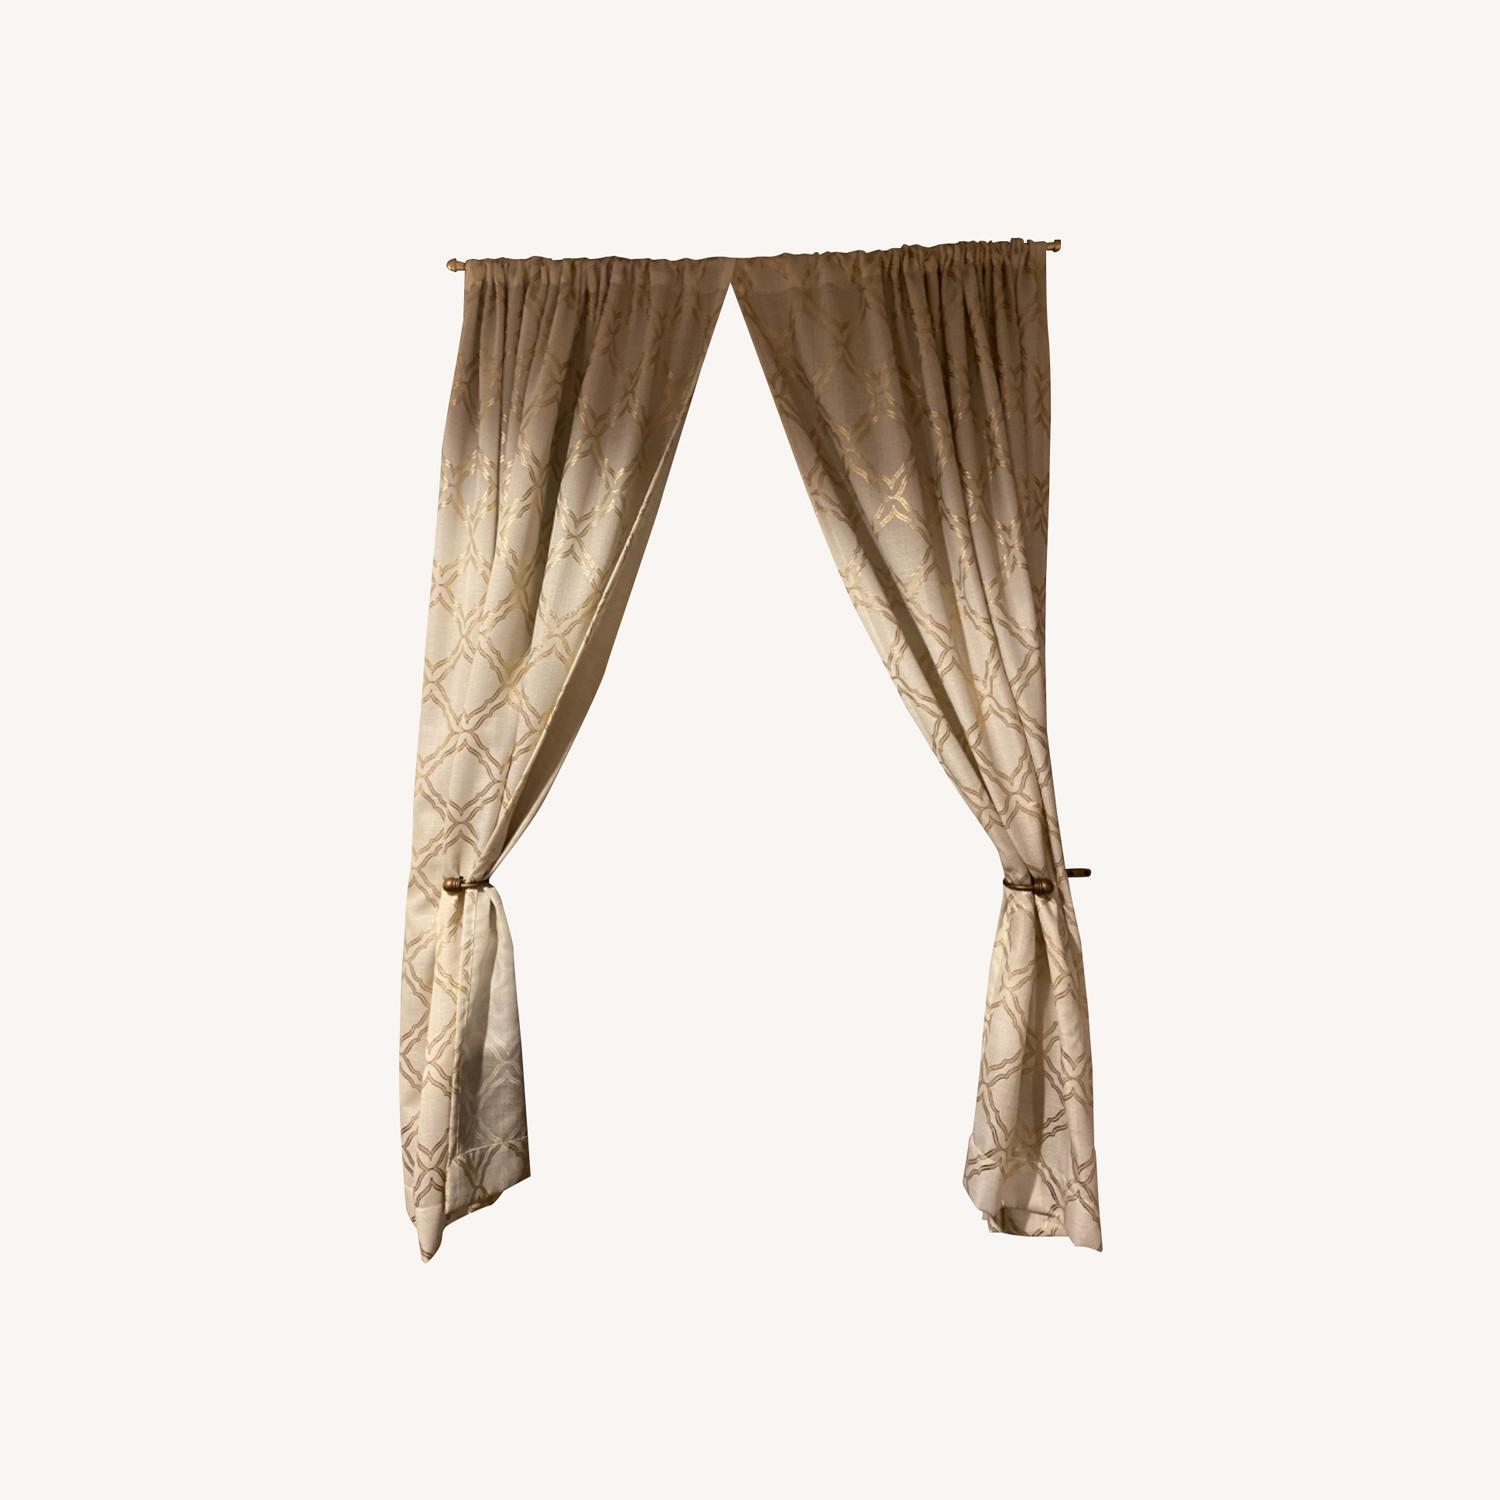 Target Gold Detailed Curtains - image-0